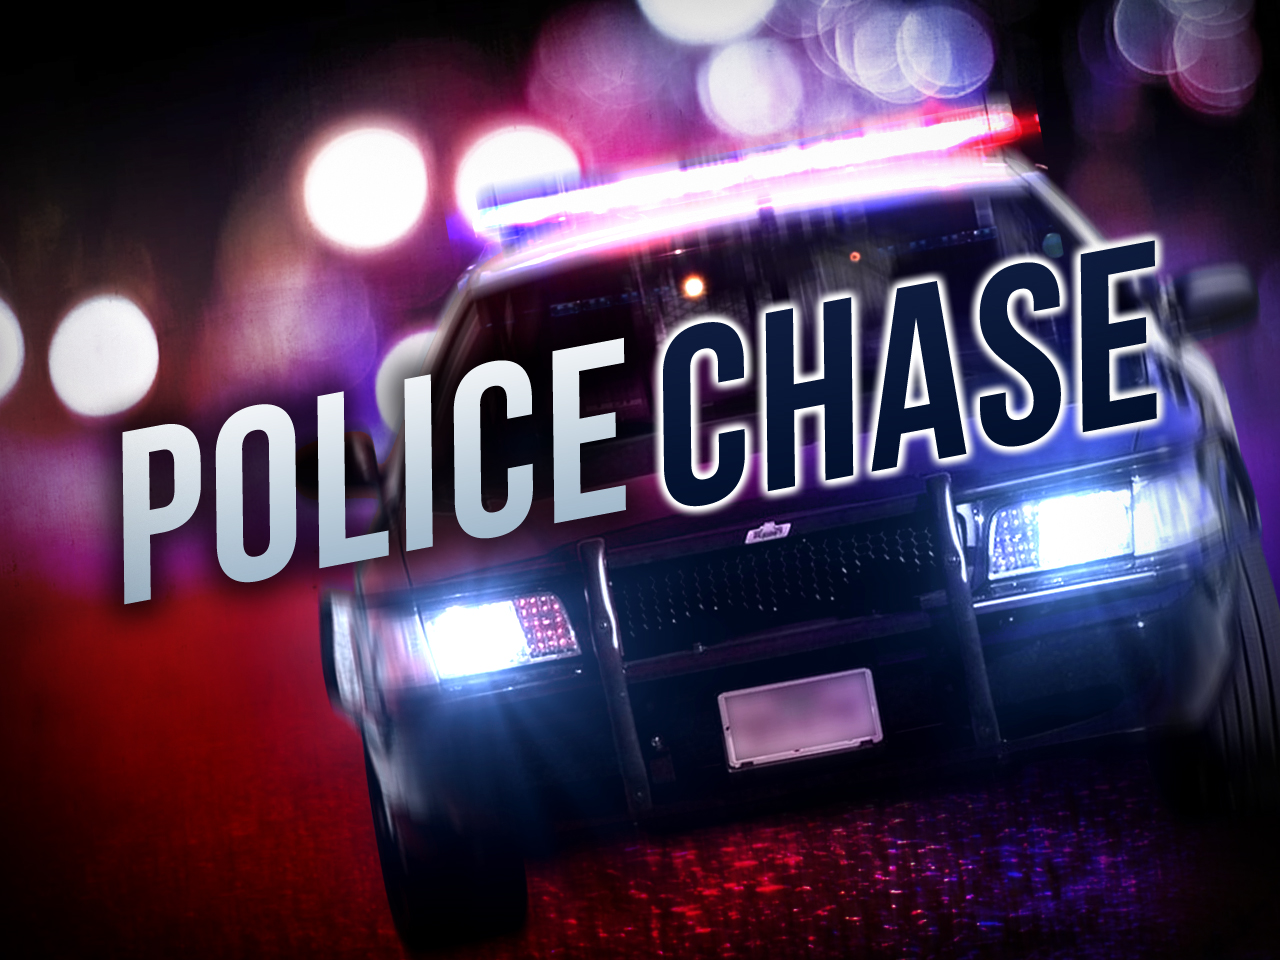 POLICE CHASE_1522790306948.png.jpg